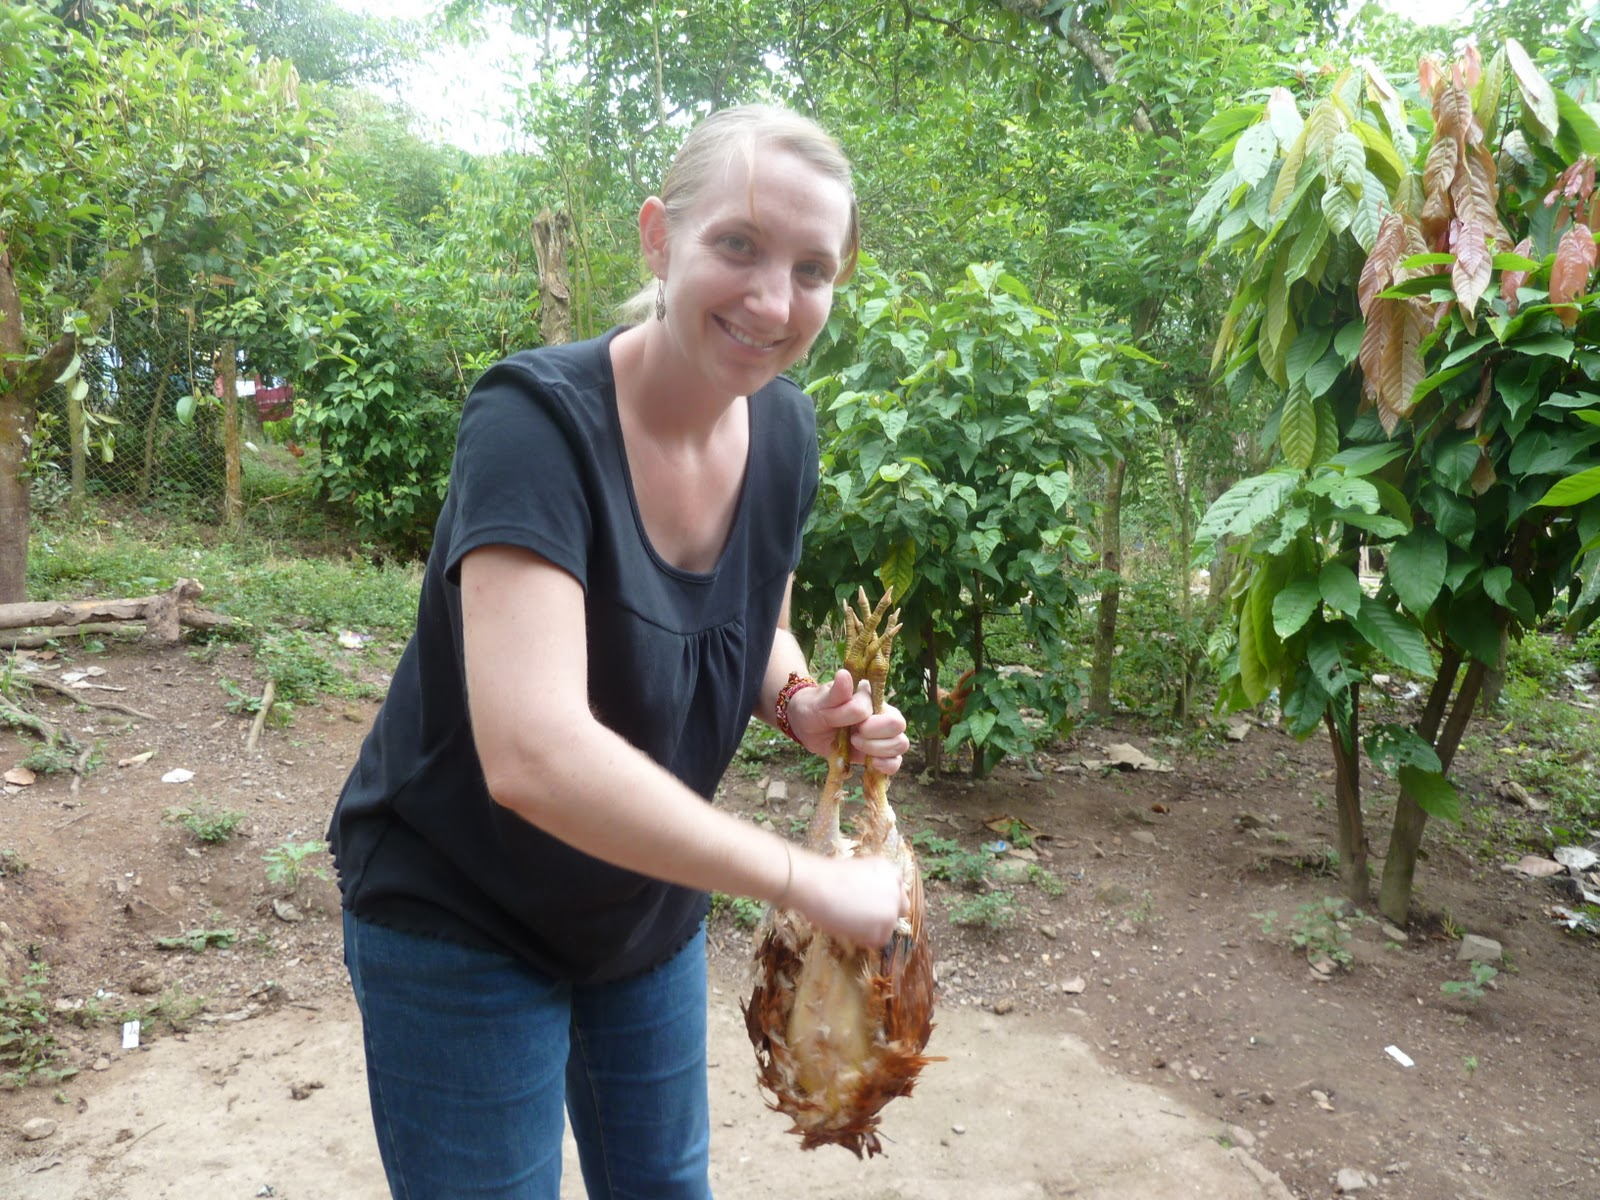 Woman Slaughter chicken